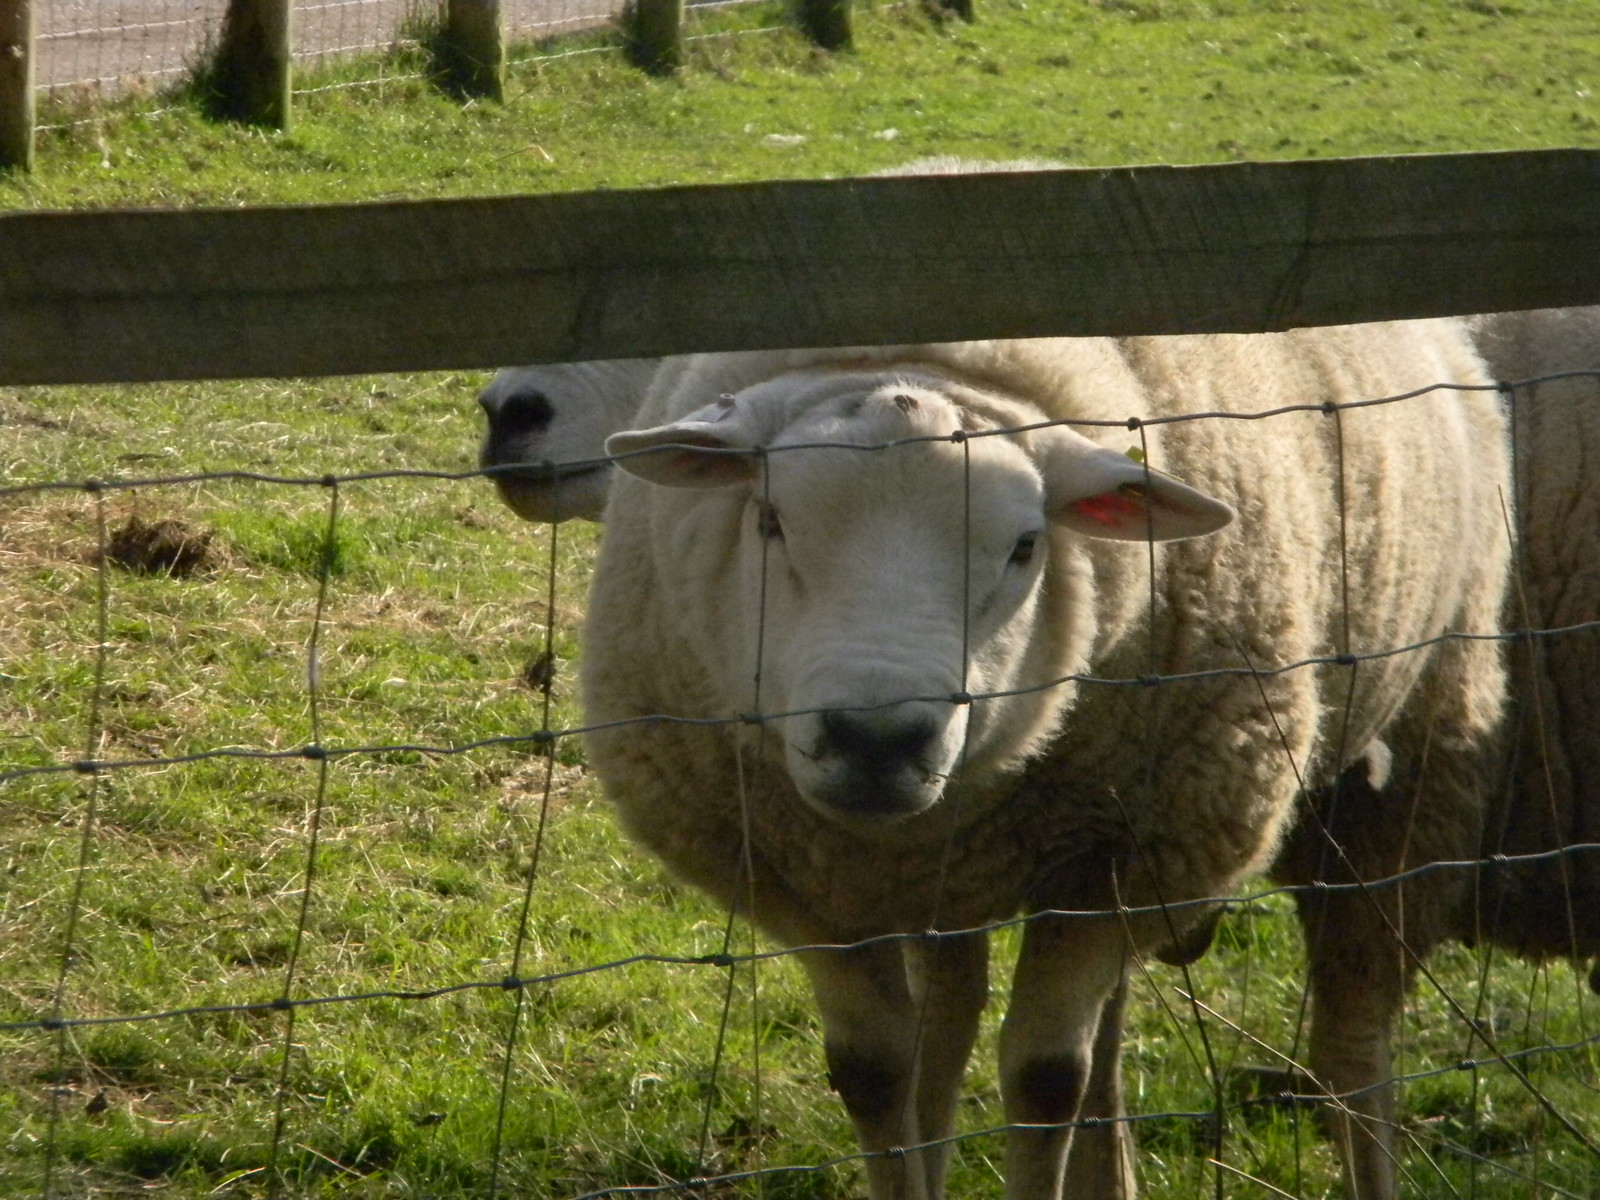 Sheep Haddenham to Aylesbury